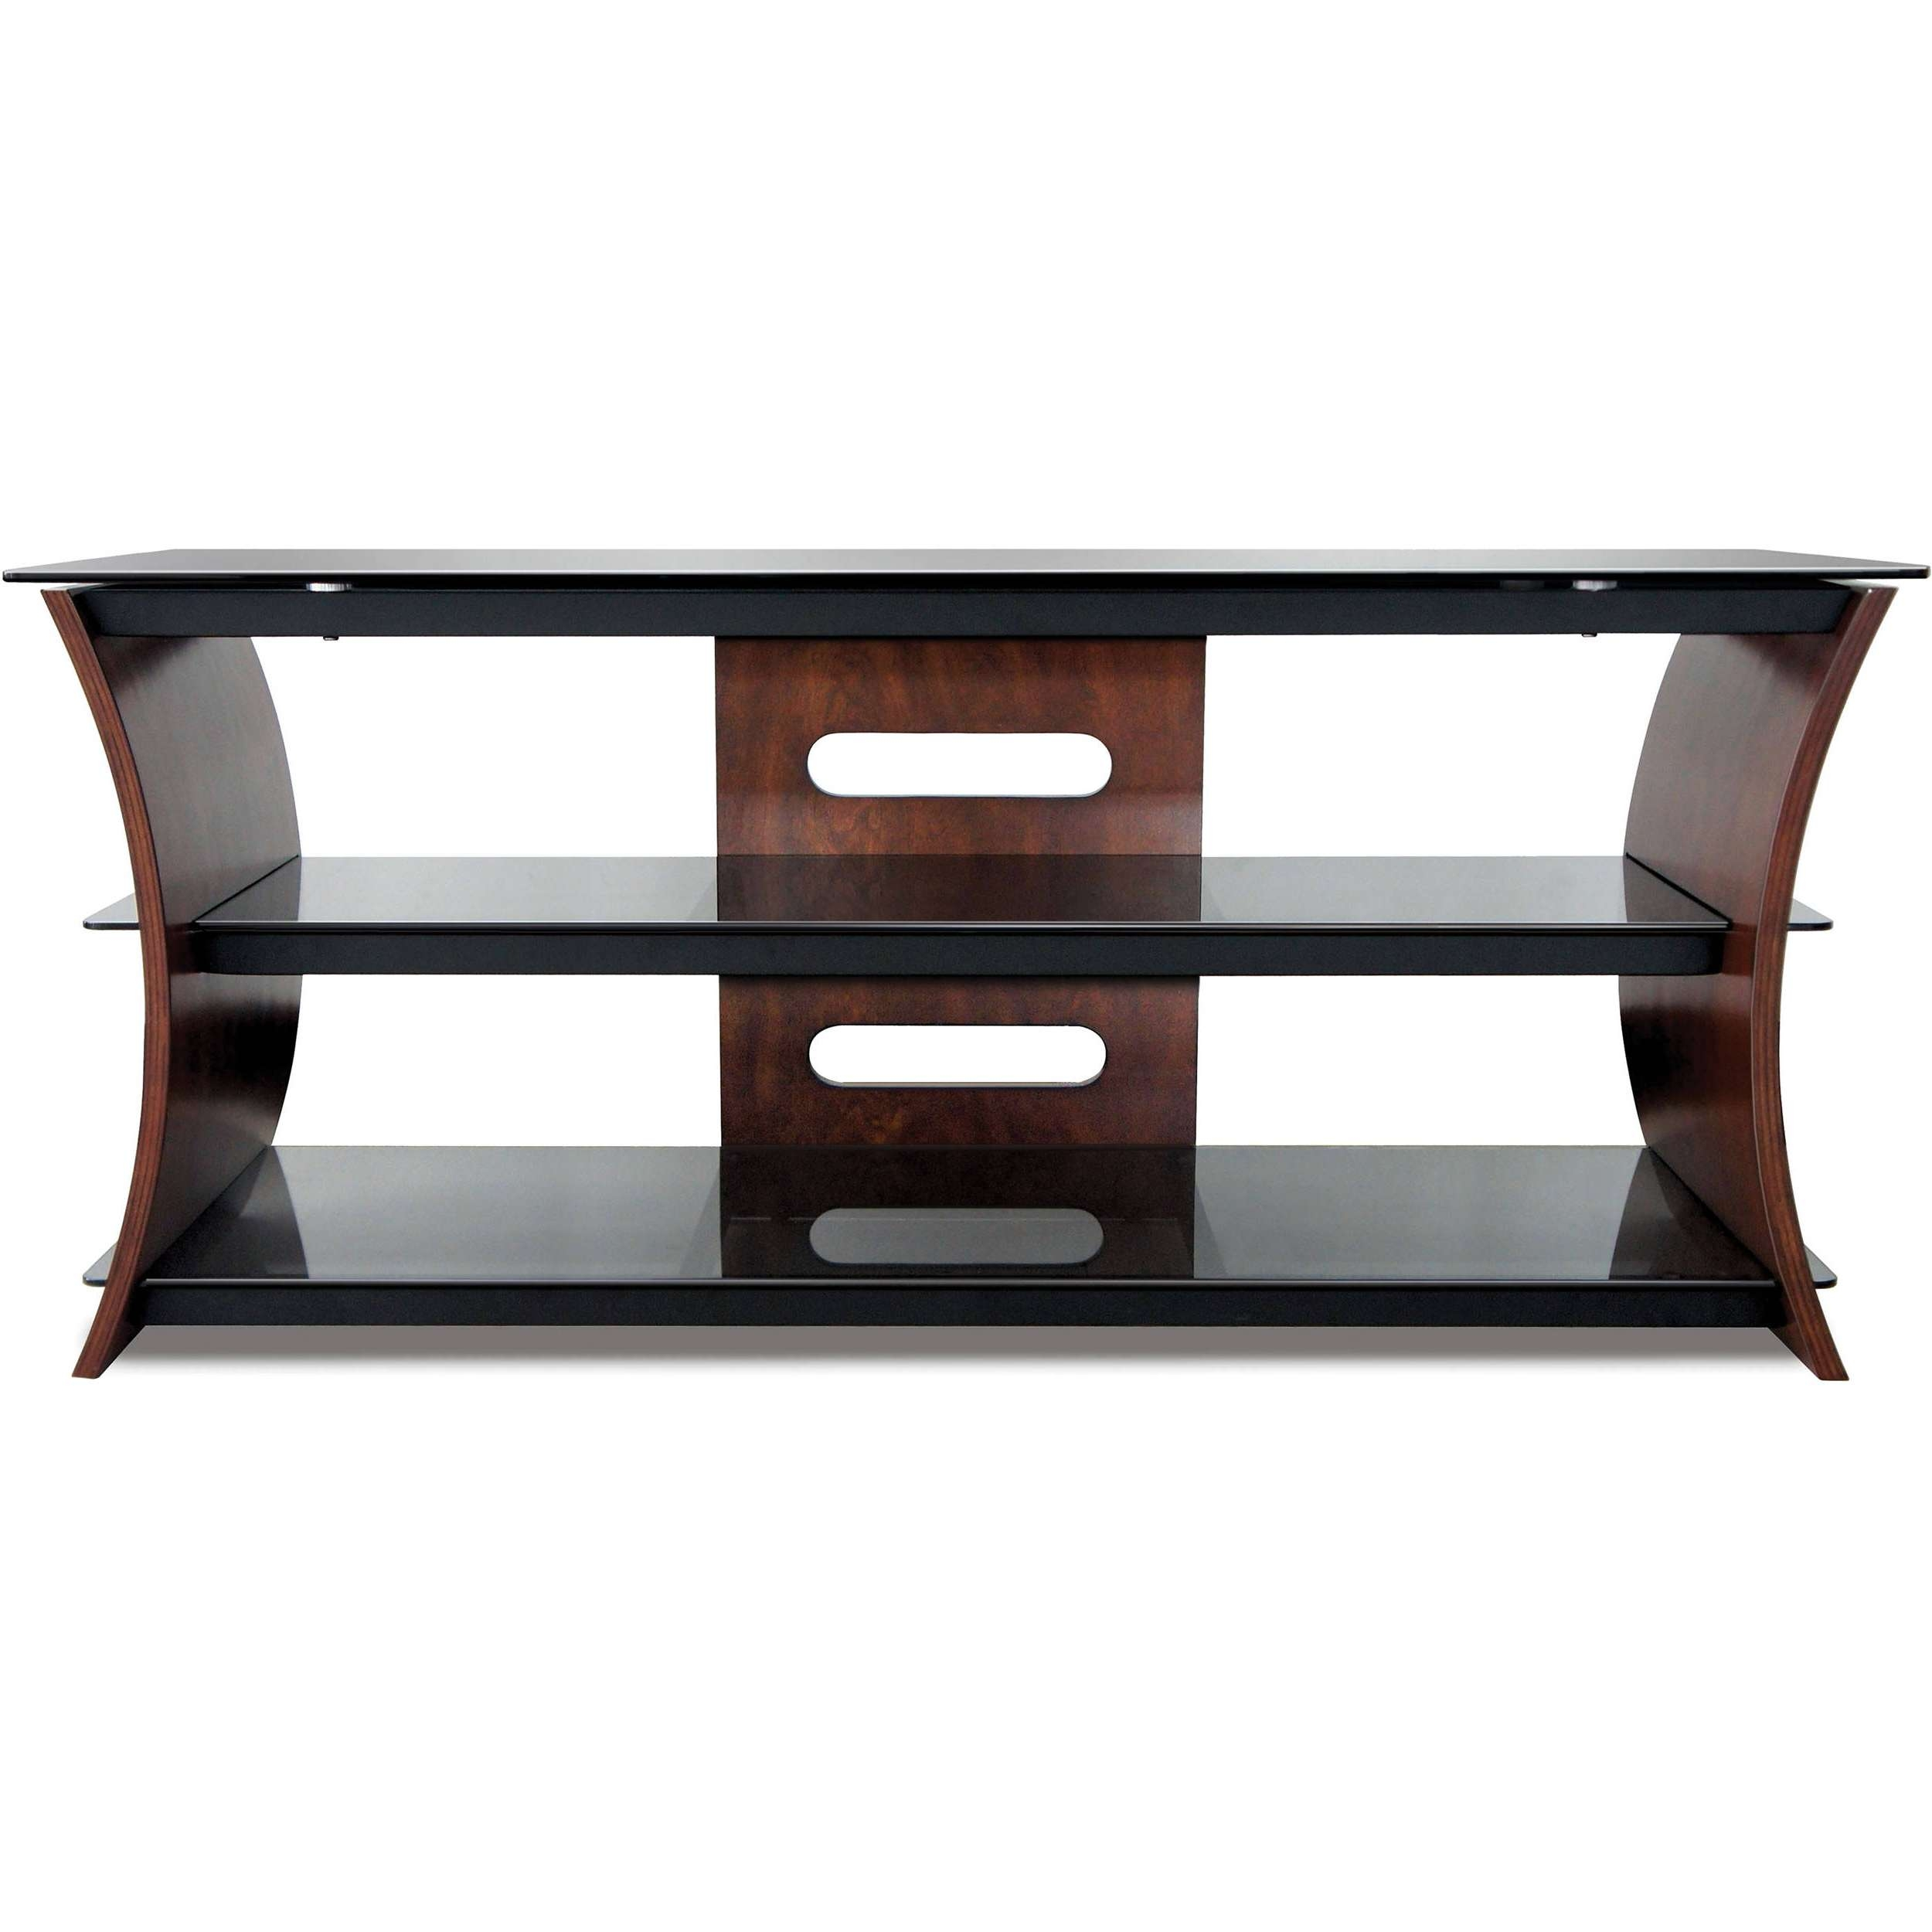 Bell'o Cw356 Curved Wood Tv Stand Cw356 B&h Photo Video Intended For Wood Tv Stands (View 7 of 15)